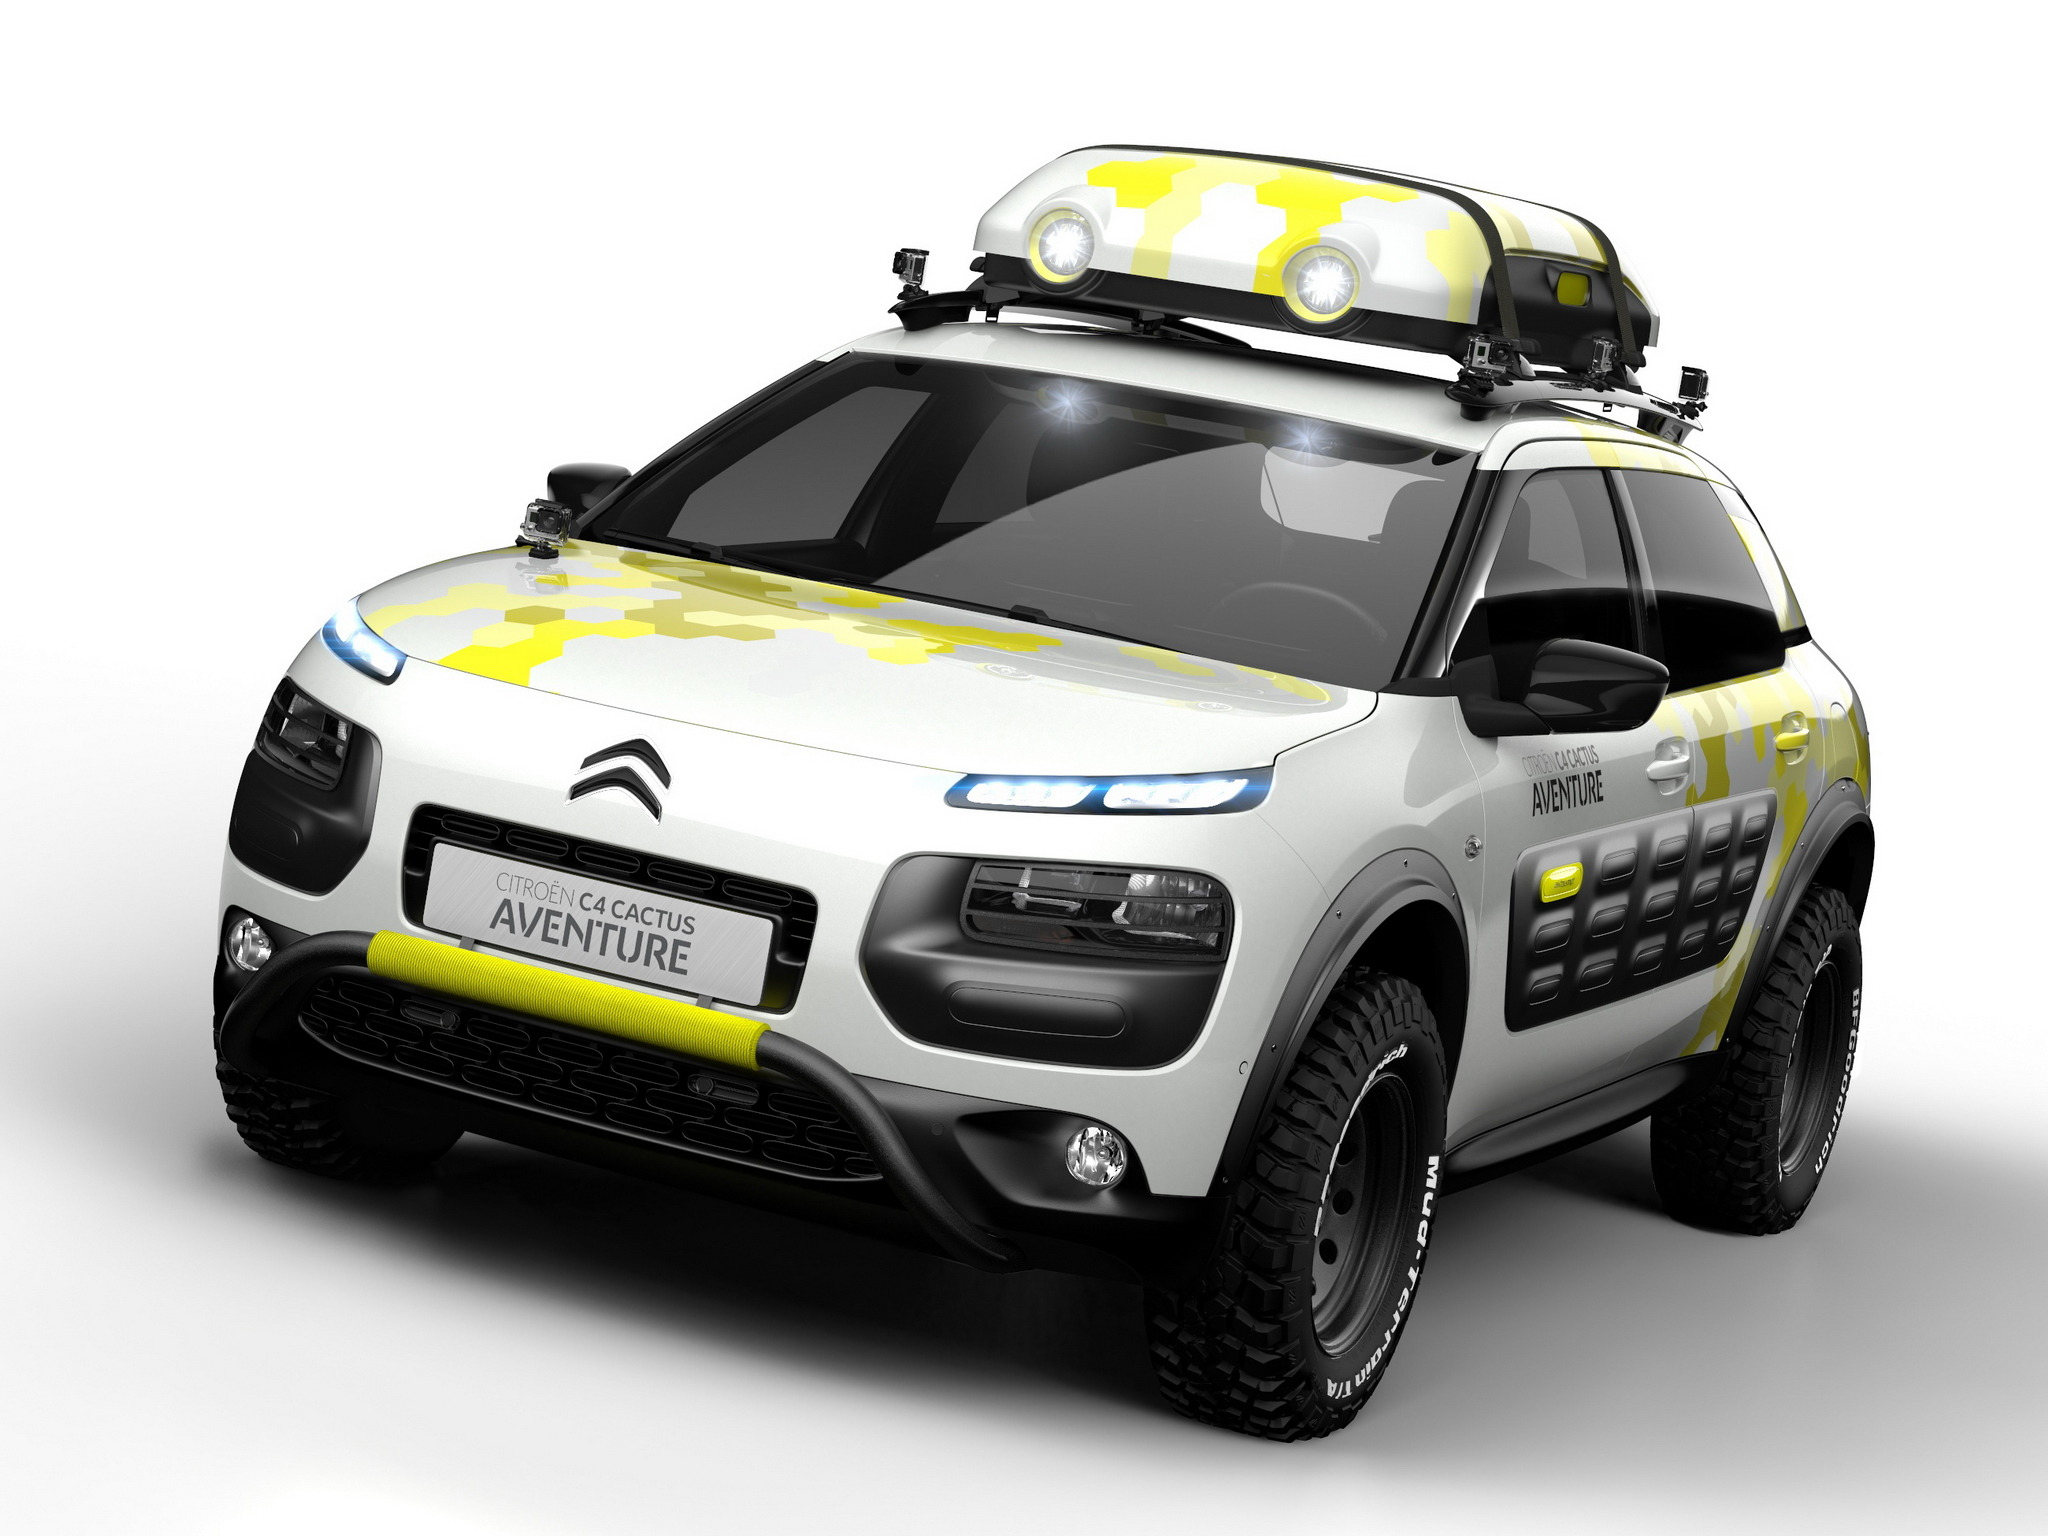 citroen c4 cactus aventure concept. Black Bedroom Furniture Sets. Home Design Ideas